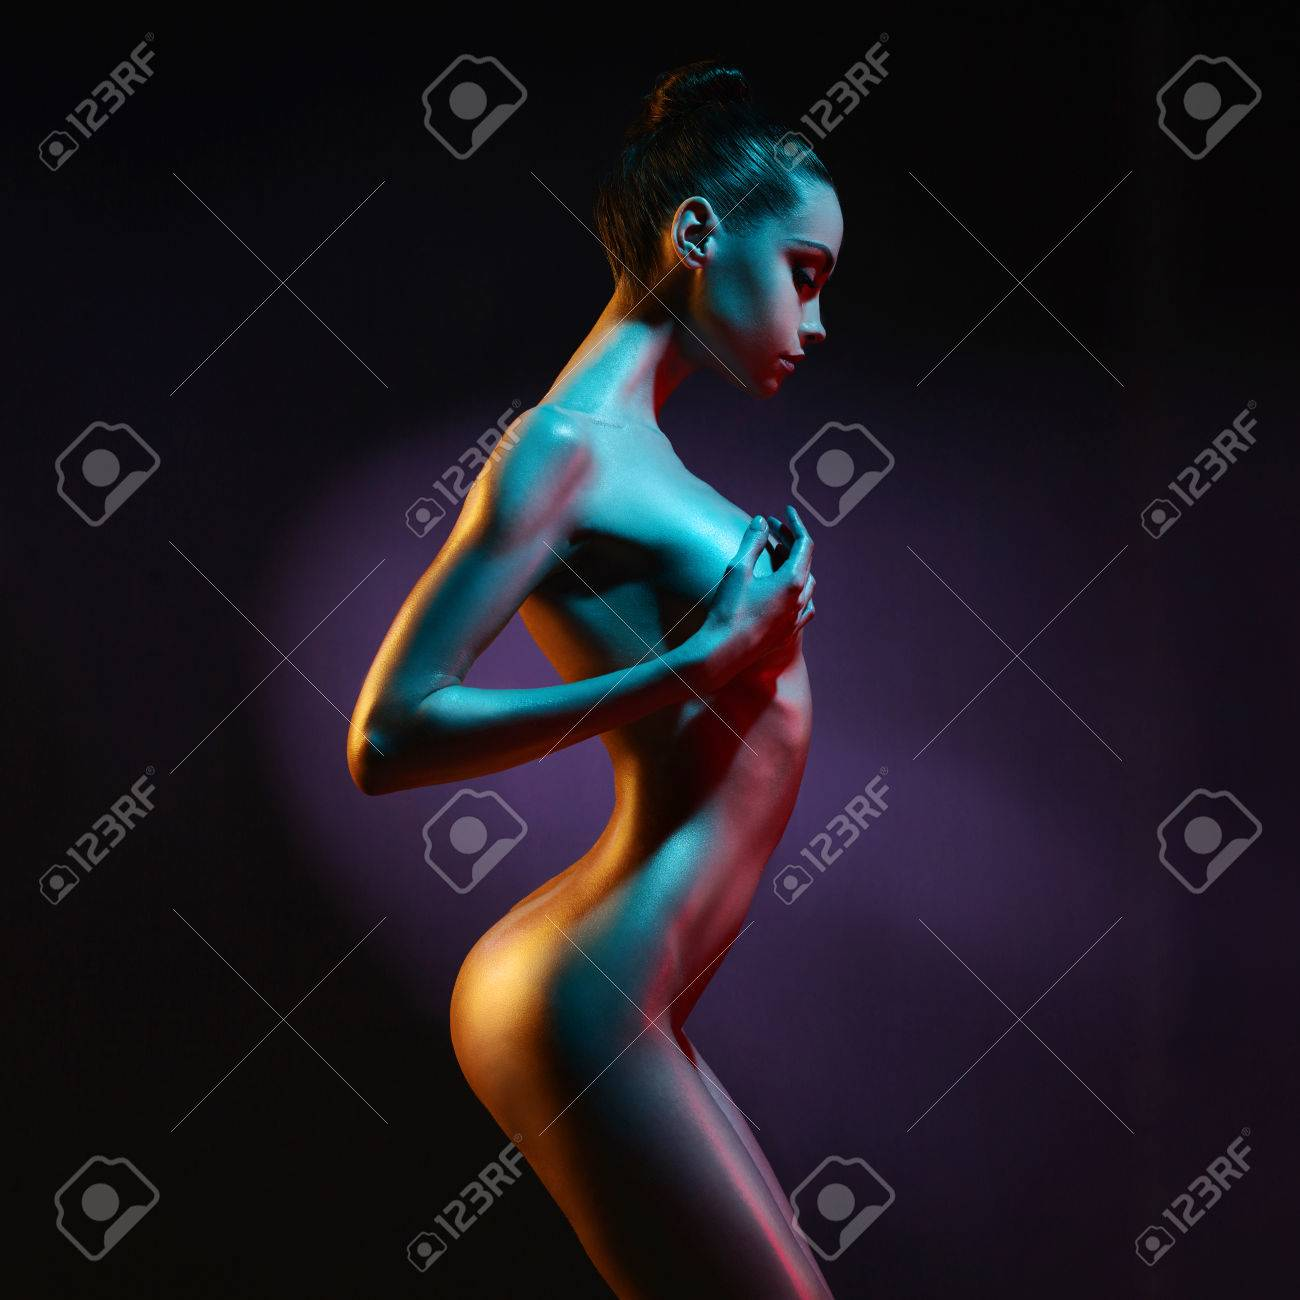 fashion art photo of elegant nude model in the light colored spotlights Standard-Bild - 55048656